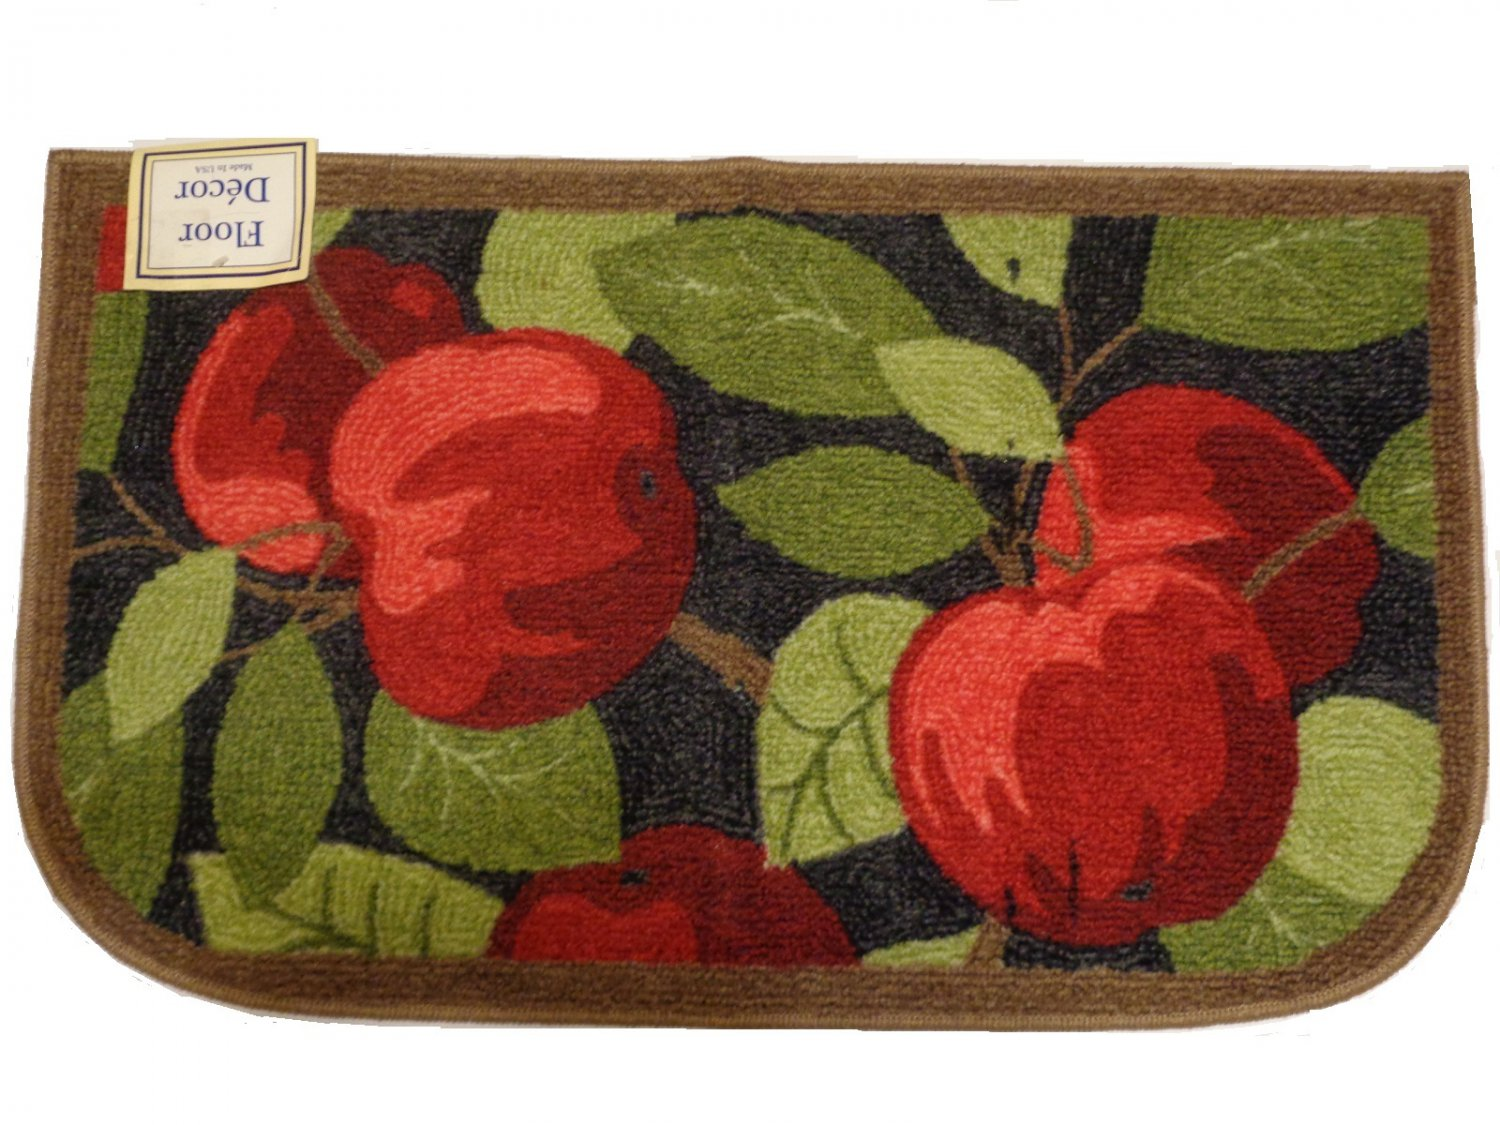 apple kitchen rugs samsung appliance packages red apples rug leaves mat